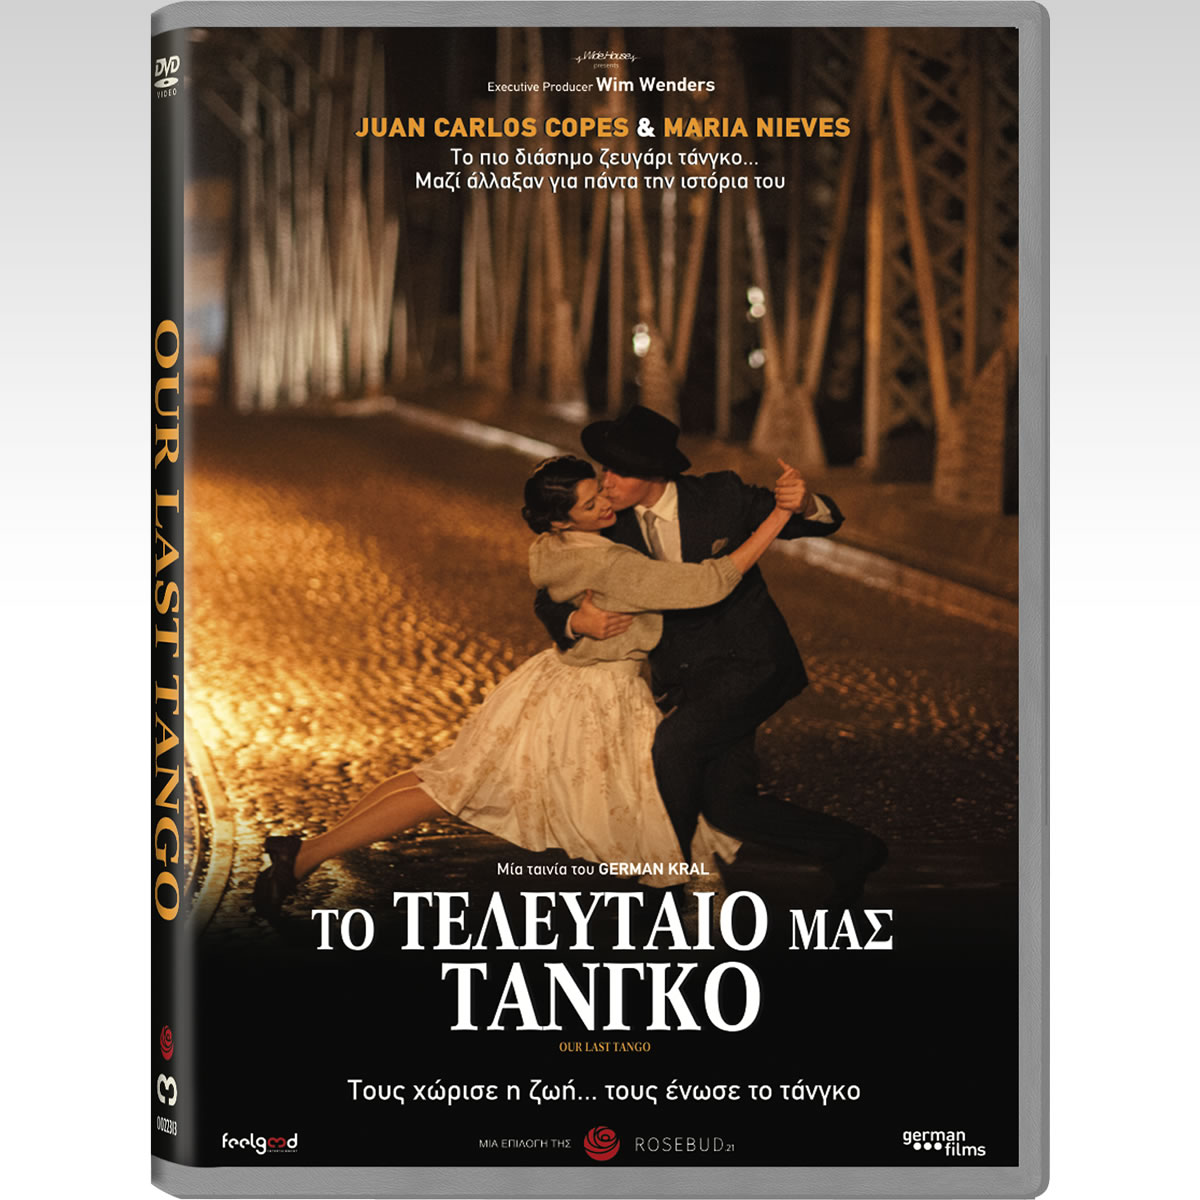 OUR LAST TANGO - TO ΤΕΛΕΥΤΑΙΟ ΜΑΣ ΤΑΝΓΚΟ (DVD)